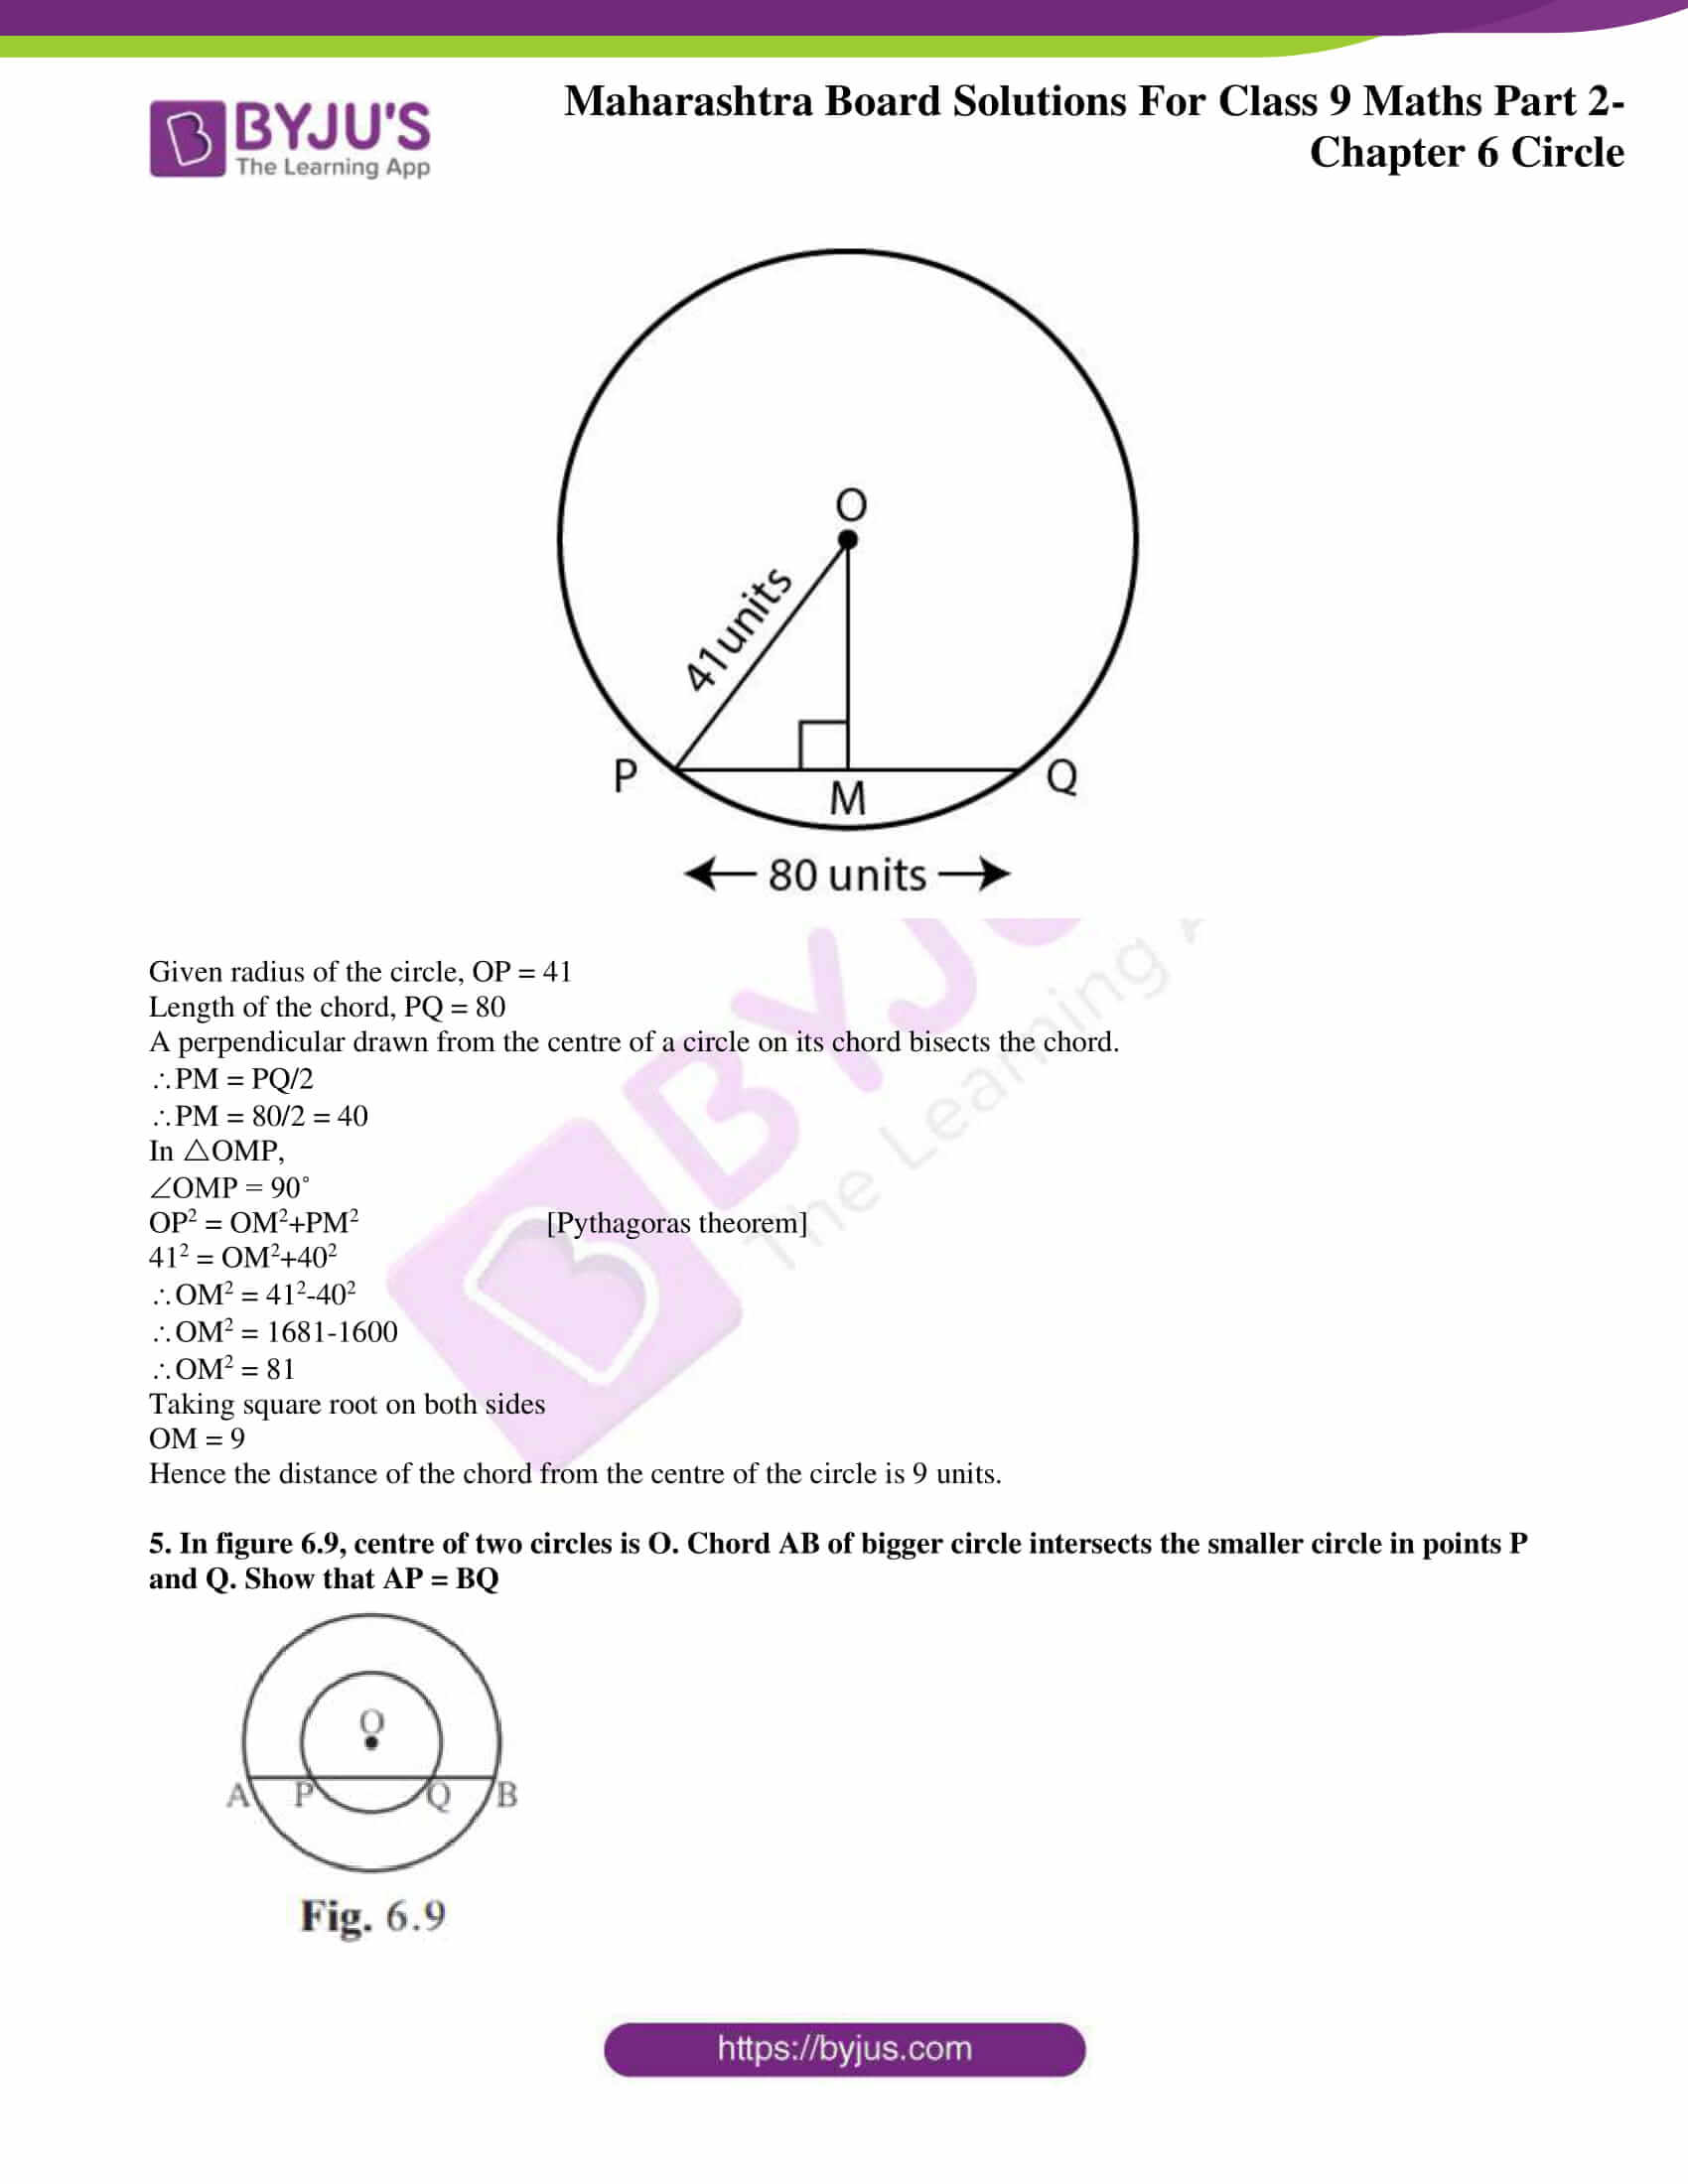 msbshse solutions for class 9 maths part 2 chapter 6 04